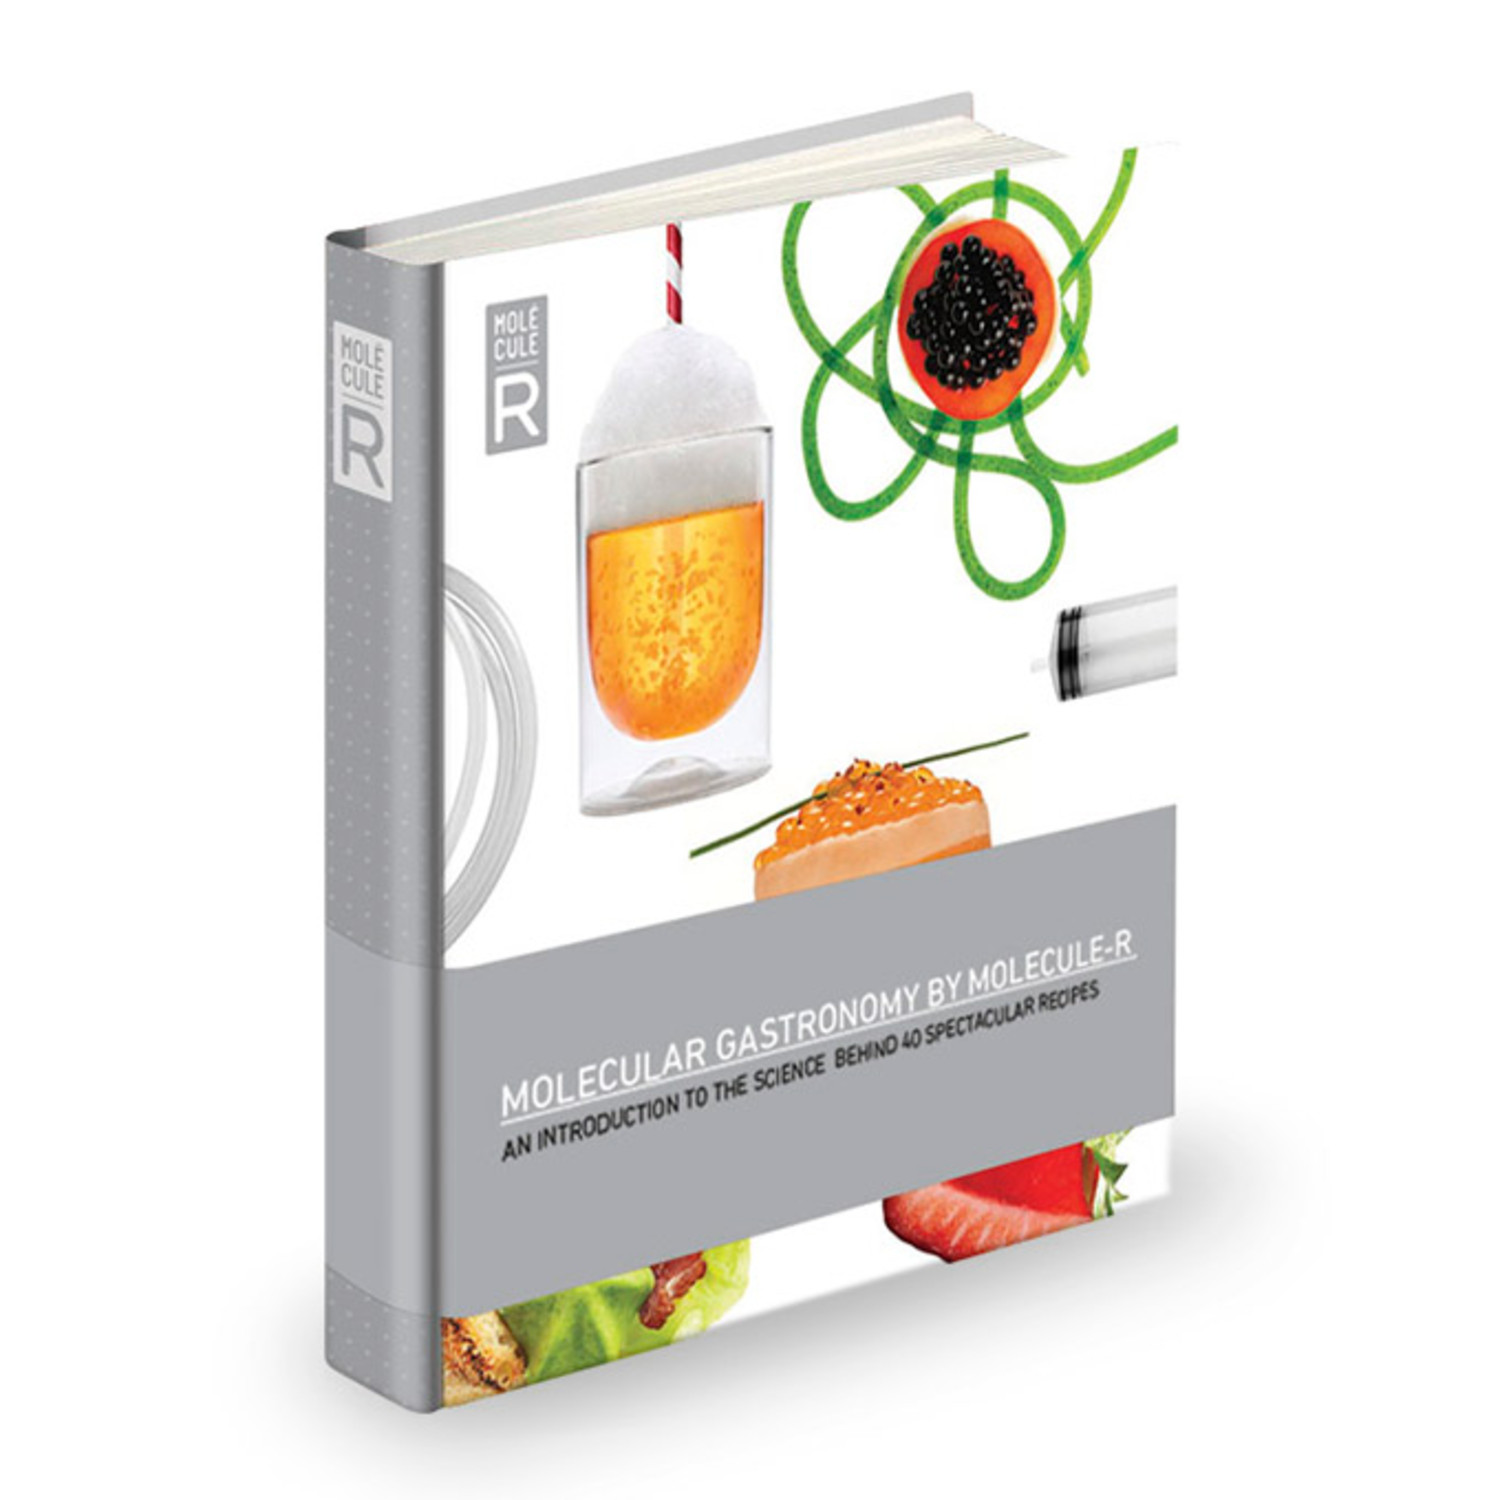 Cuisine r evolution cookbook molecule r touch of modern - Cuisine r evolution recipes ...